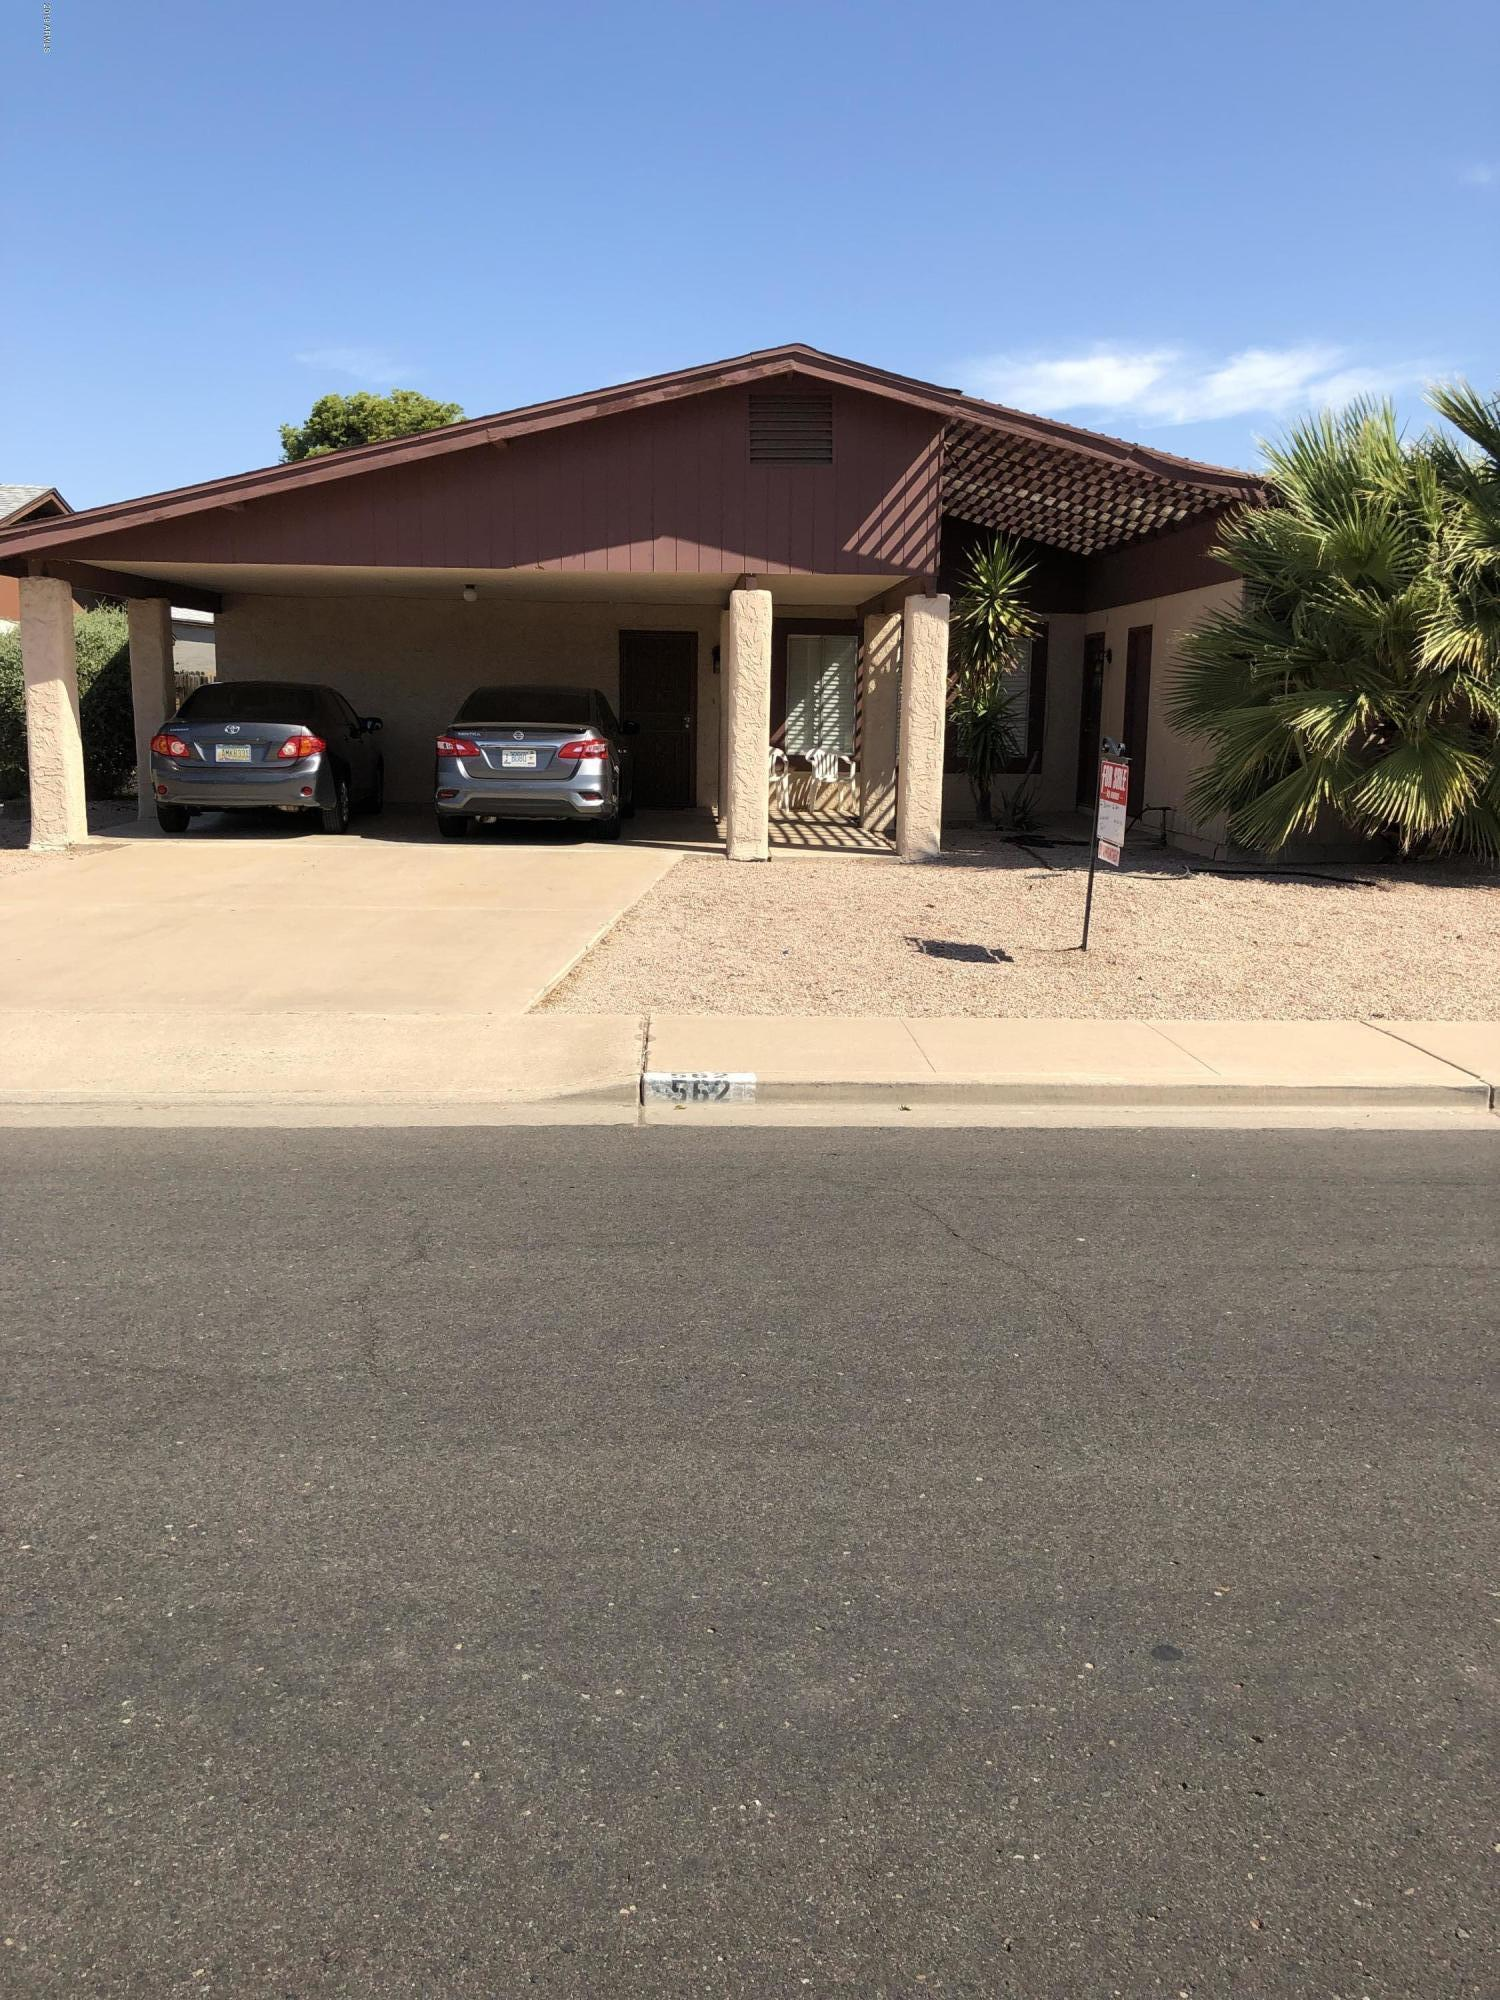 Photo of 562 W Enid Avenue, Mesa, AZ 85210